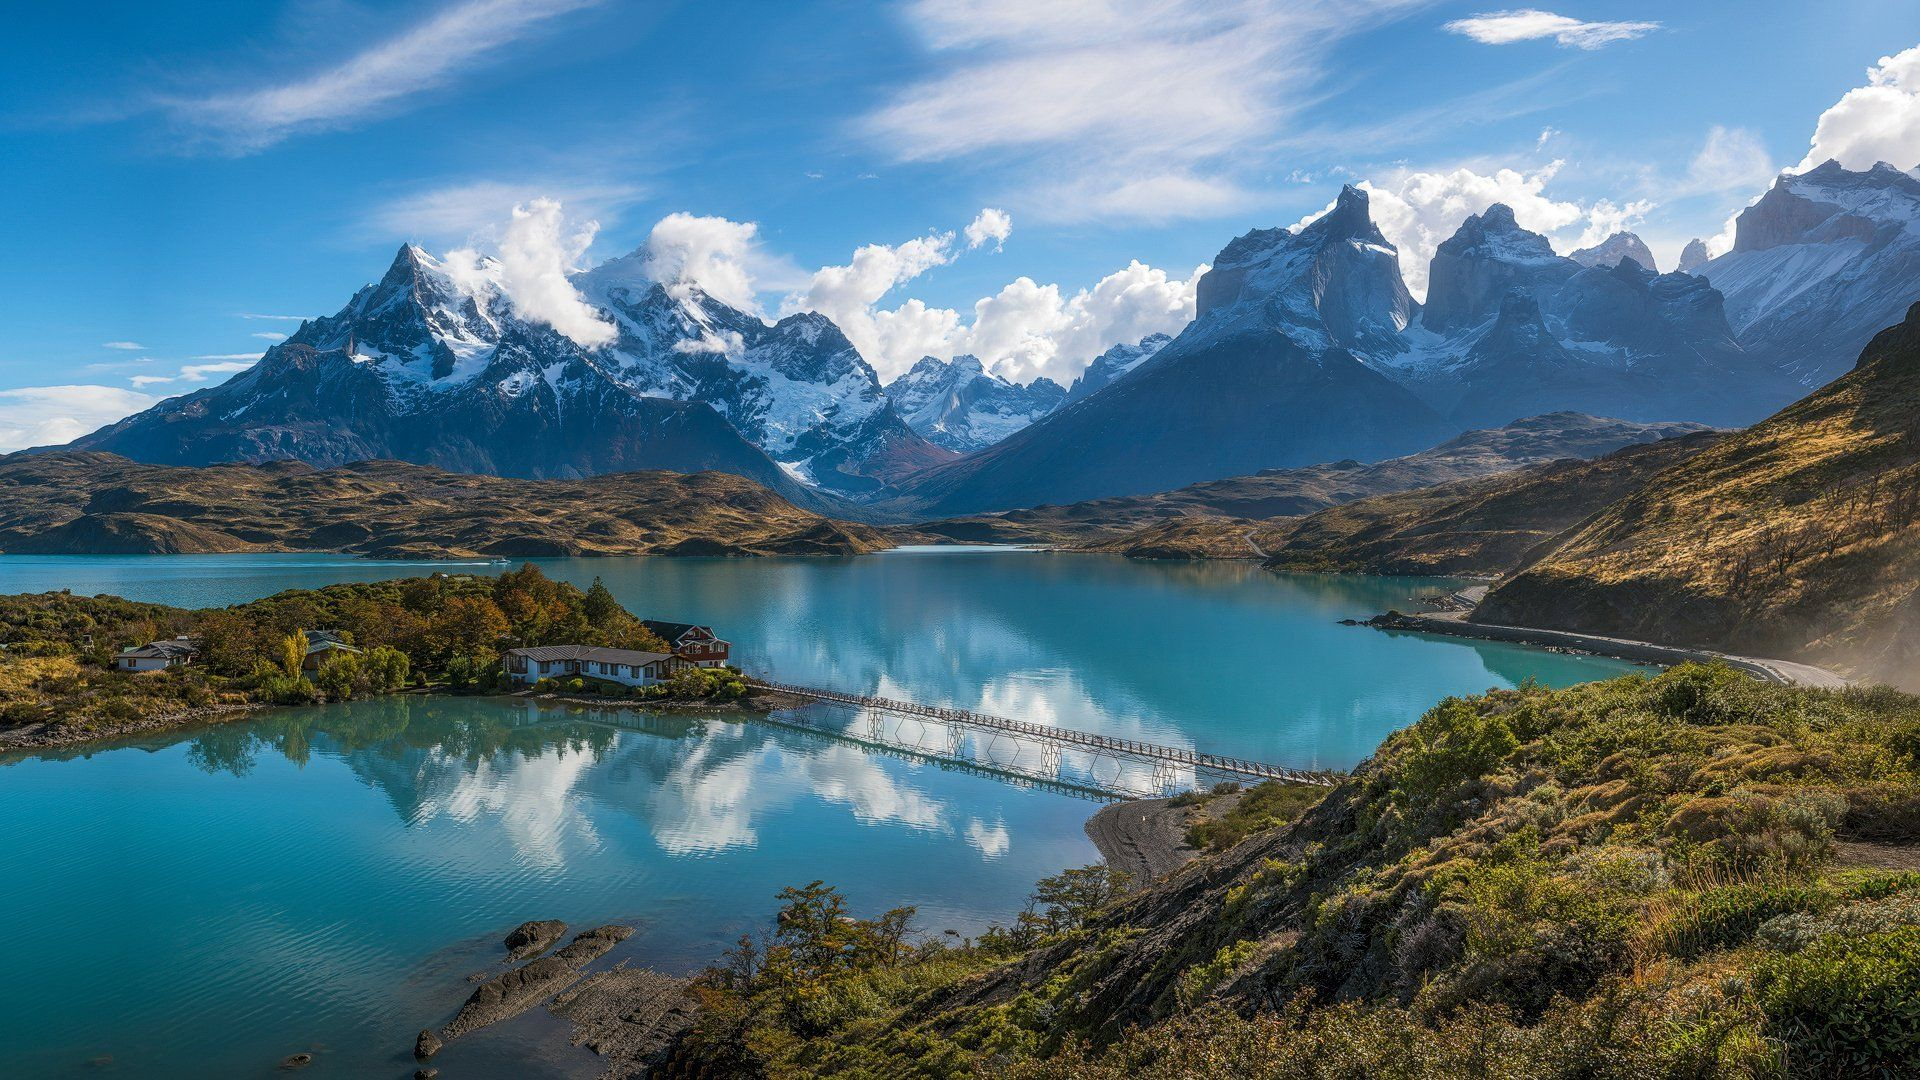 Patagonia South America >> South America Chile Patagonia Andes Mountains Lake Bridge Island